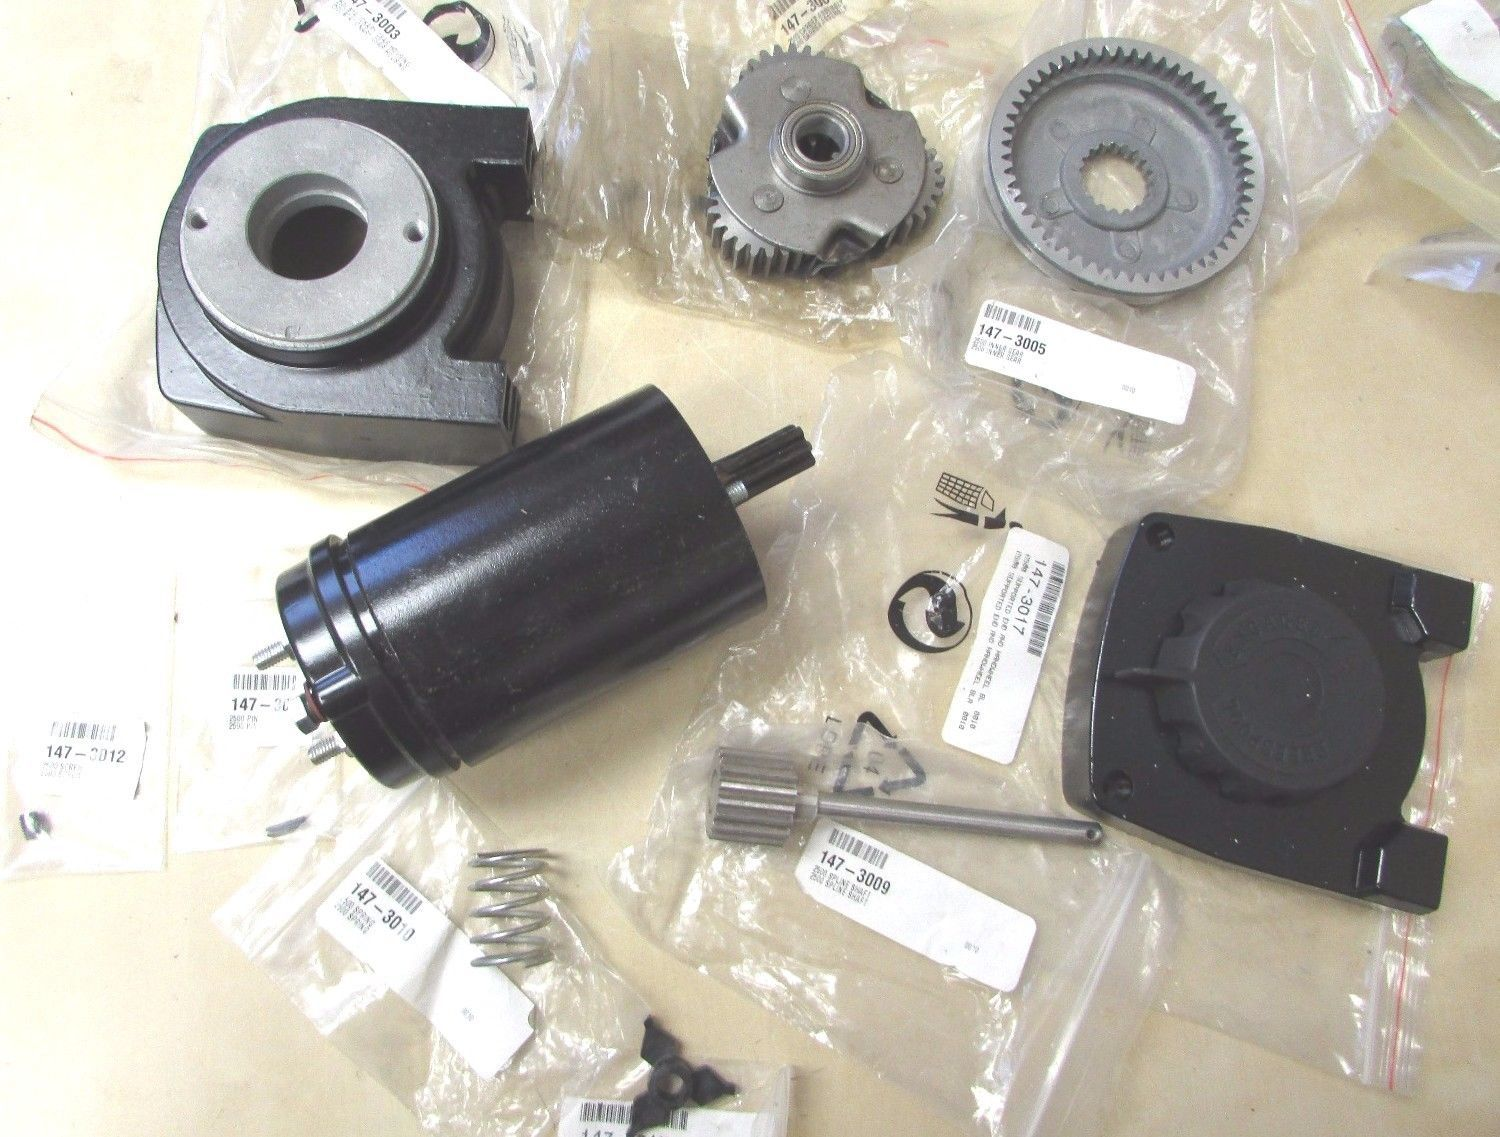 quadrax replacement winch motor gear parts bvp2500 3000 quadrax replacement winch motor gear parts bvp2500 3000 mt2500 kfi